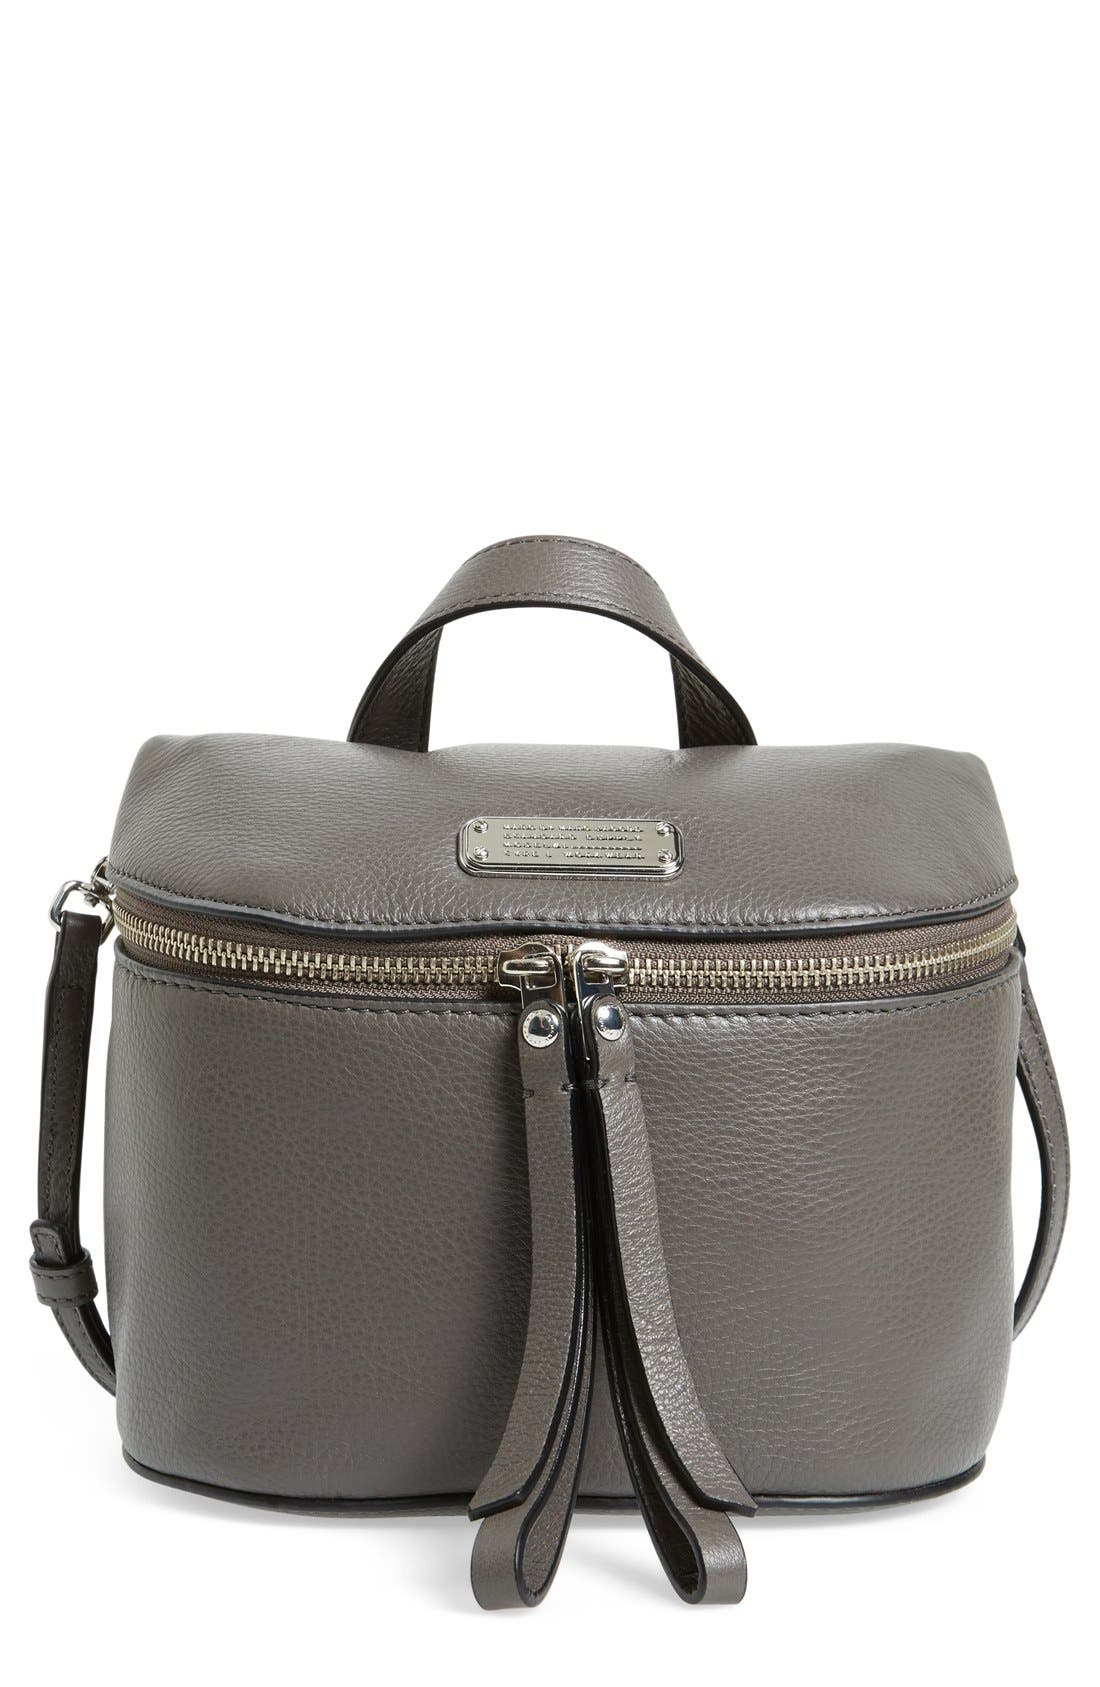 Alternate Image 1 Selected - MARC BY MARC JACOBS 'Canteen' Leather Crossbody Bag